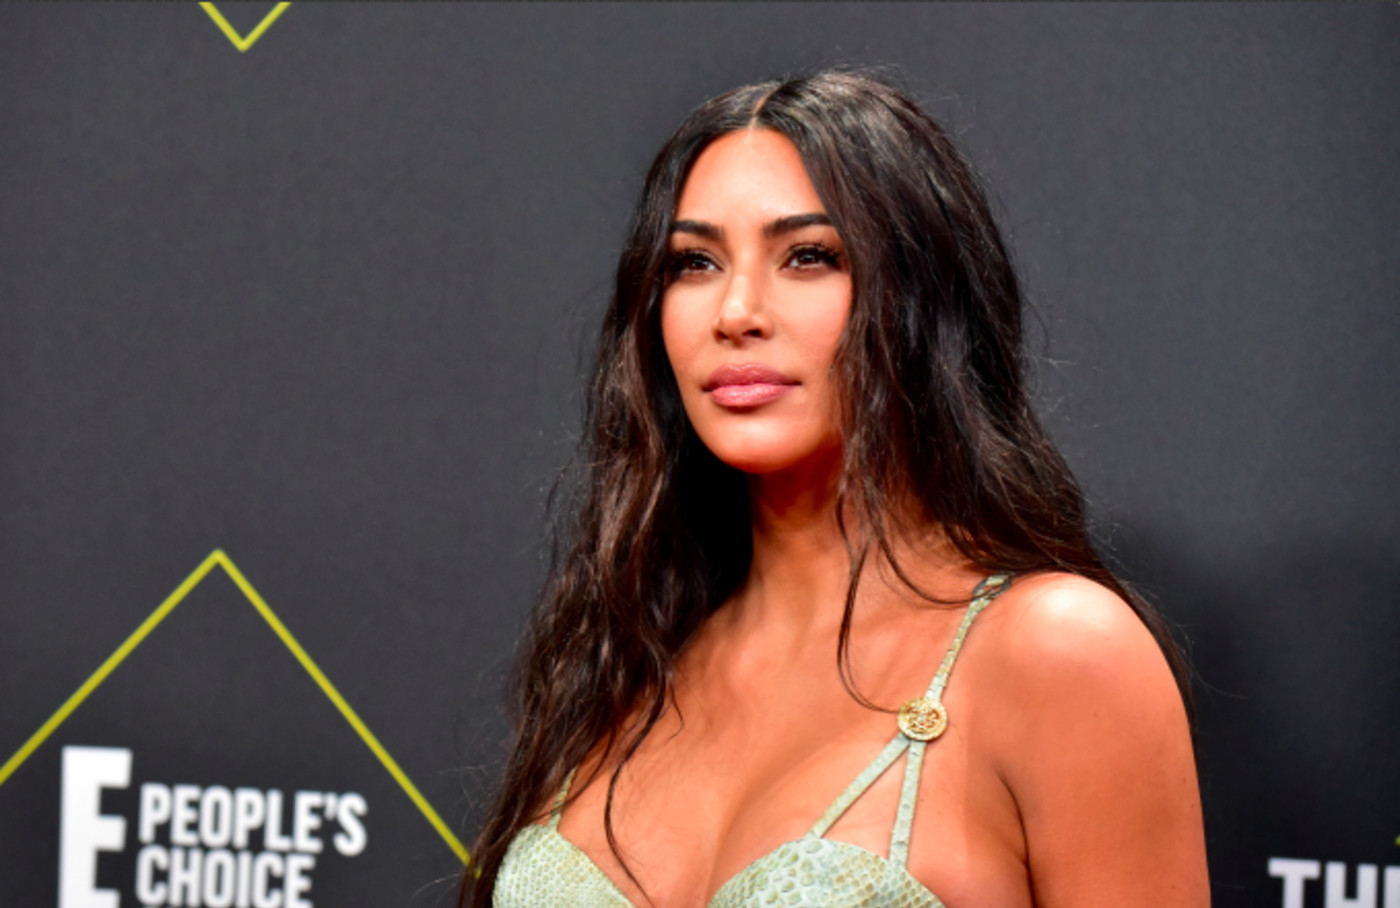 Kim Kardashian attends the 2019 E! People's Choice Awards